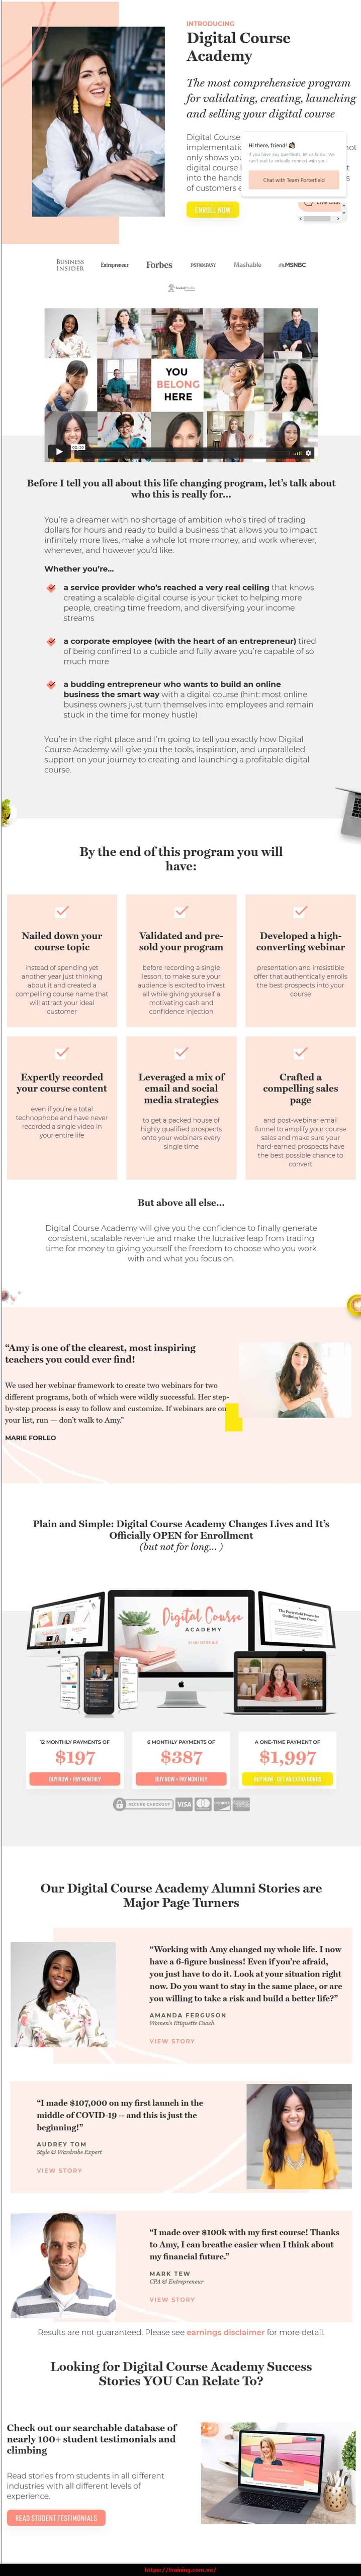 Digital Course Academy 2021 by Amy Porterfield sales page